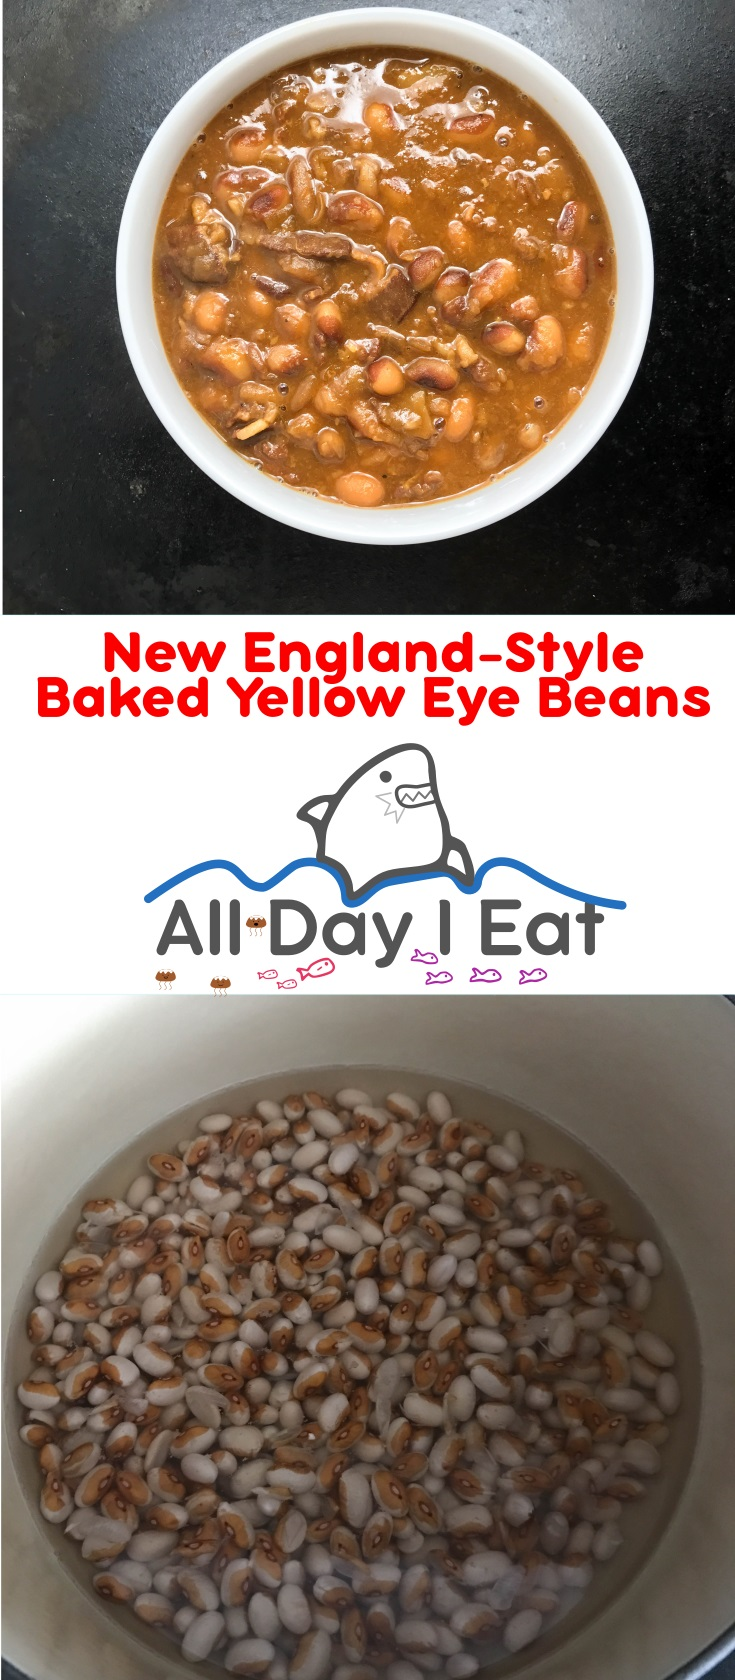 New England-Style Baked Yellow Eye Beans | www.alldayieat.com